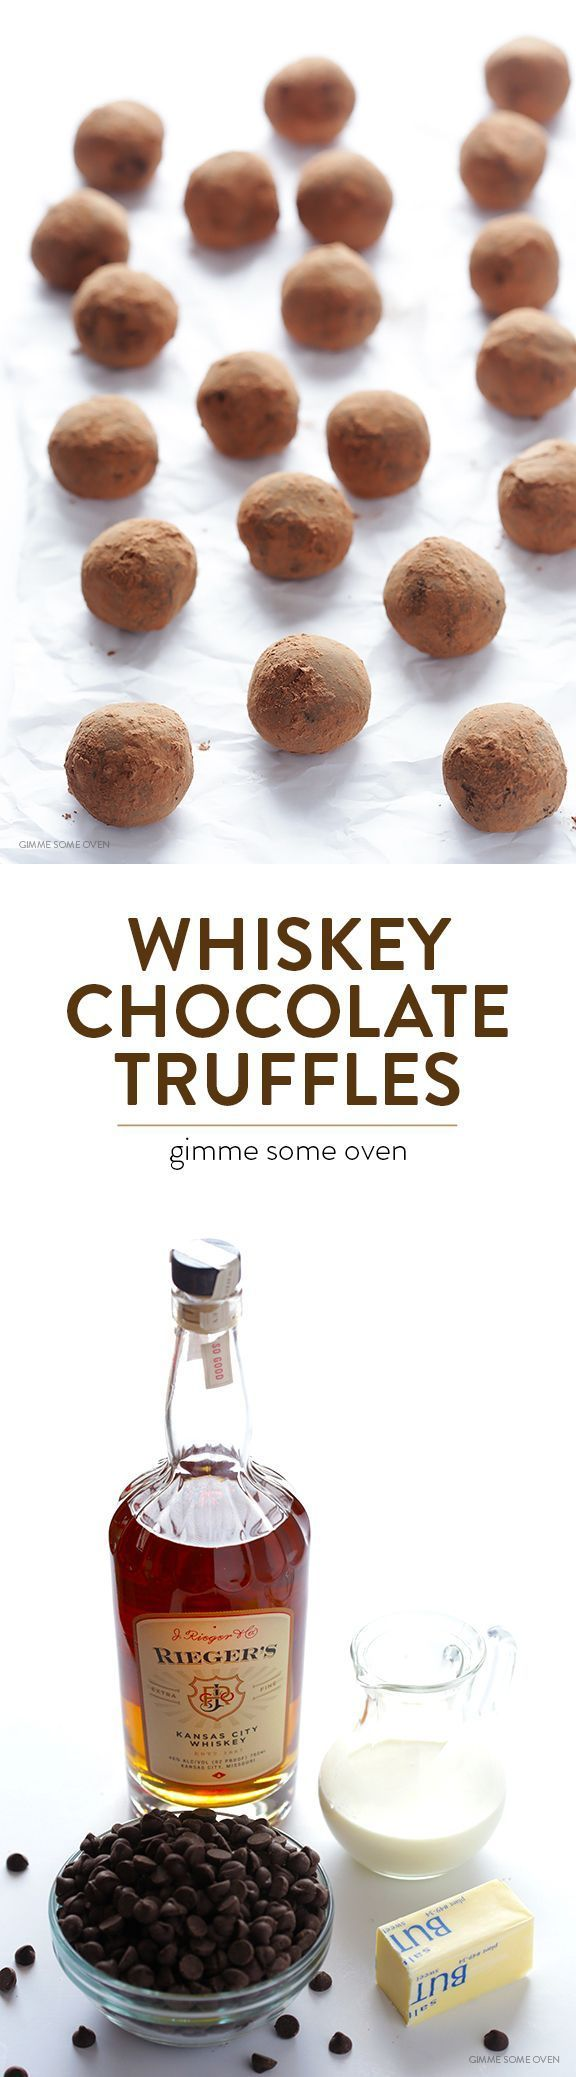 5-Ingredient Whiskey Dark Chocolate Truffles -- super easy dessert to make that's rich and delicious, with a surprise kick of whiskey! | gimmesomeoven.com